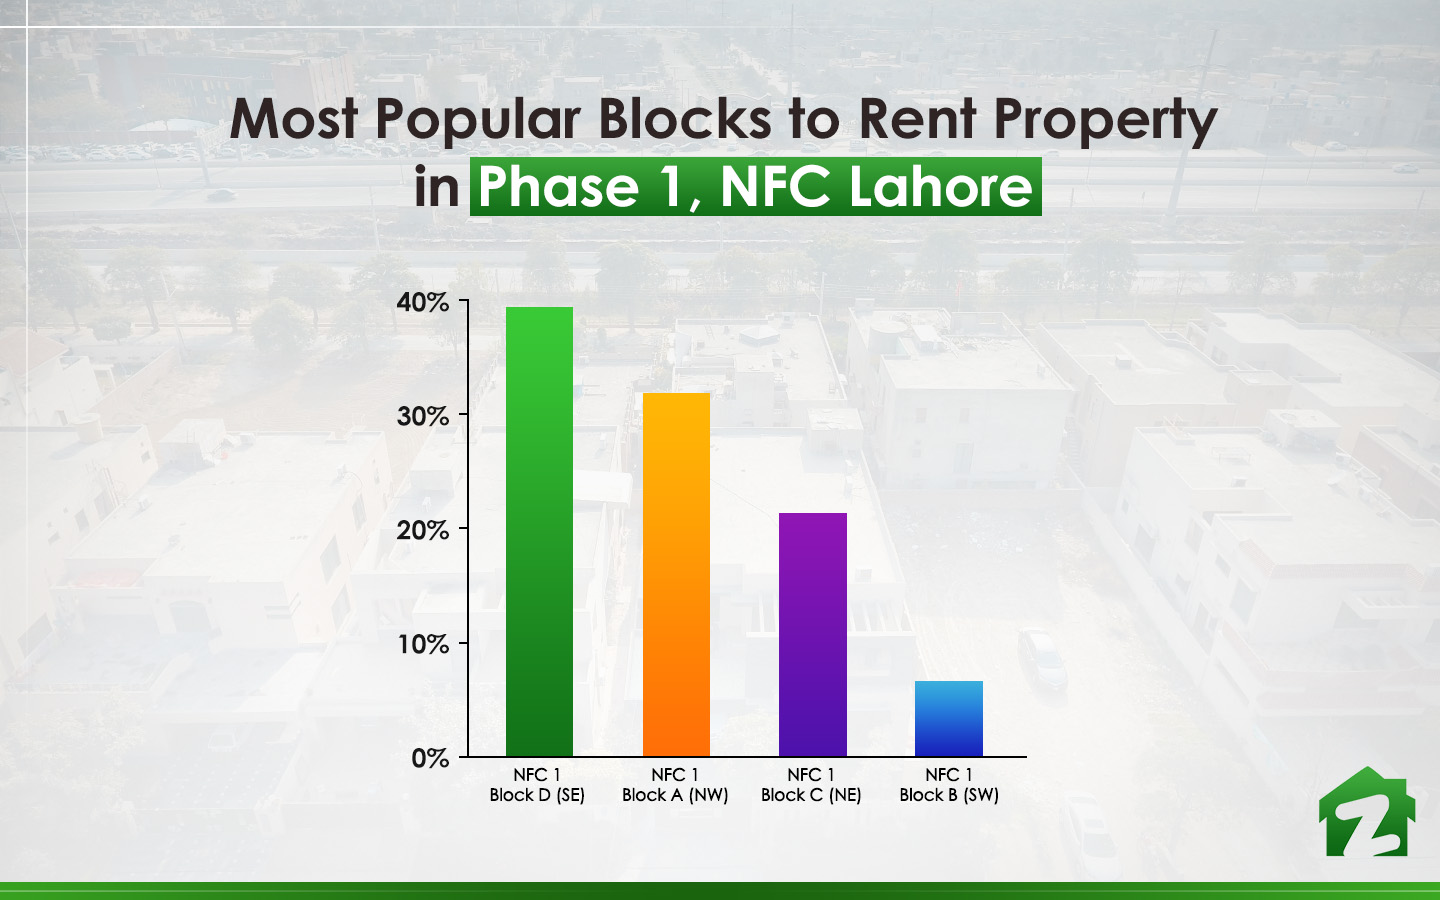 Most popular blocks for renting properties in Phase 1 NFC